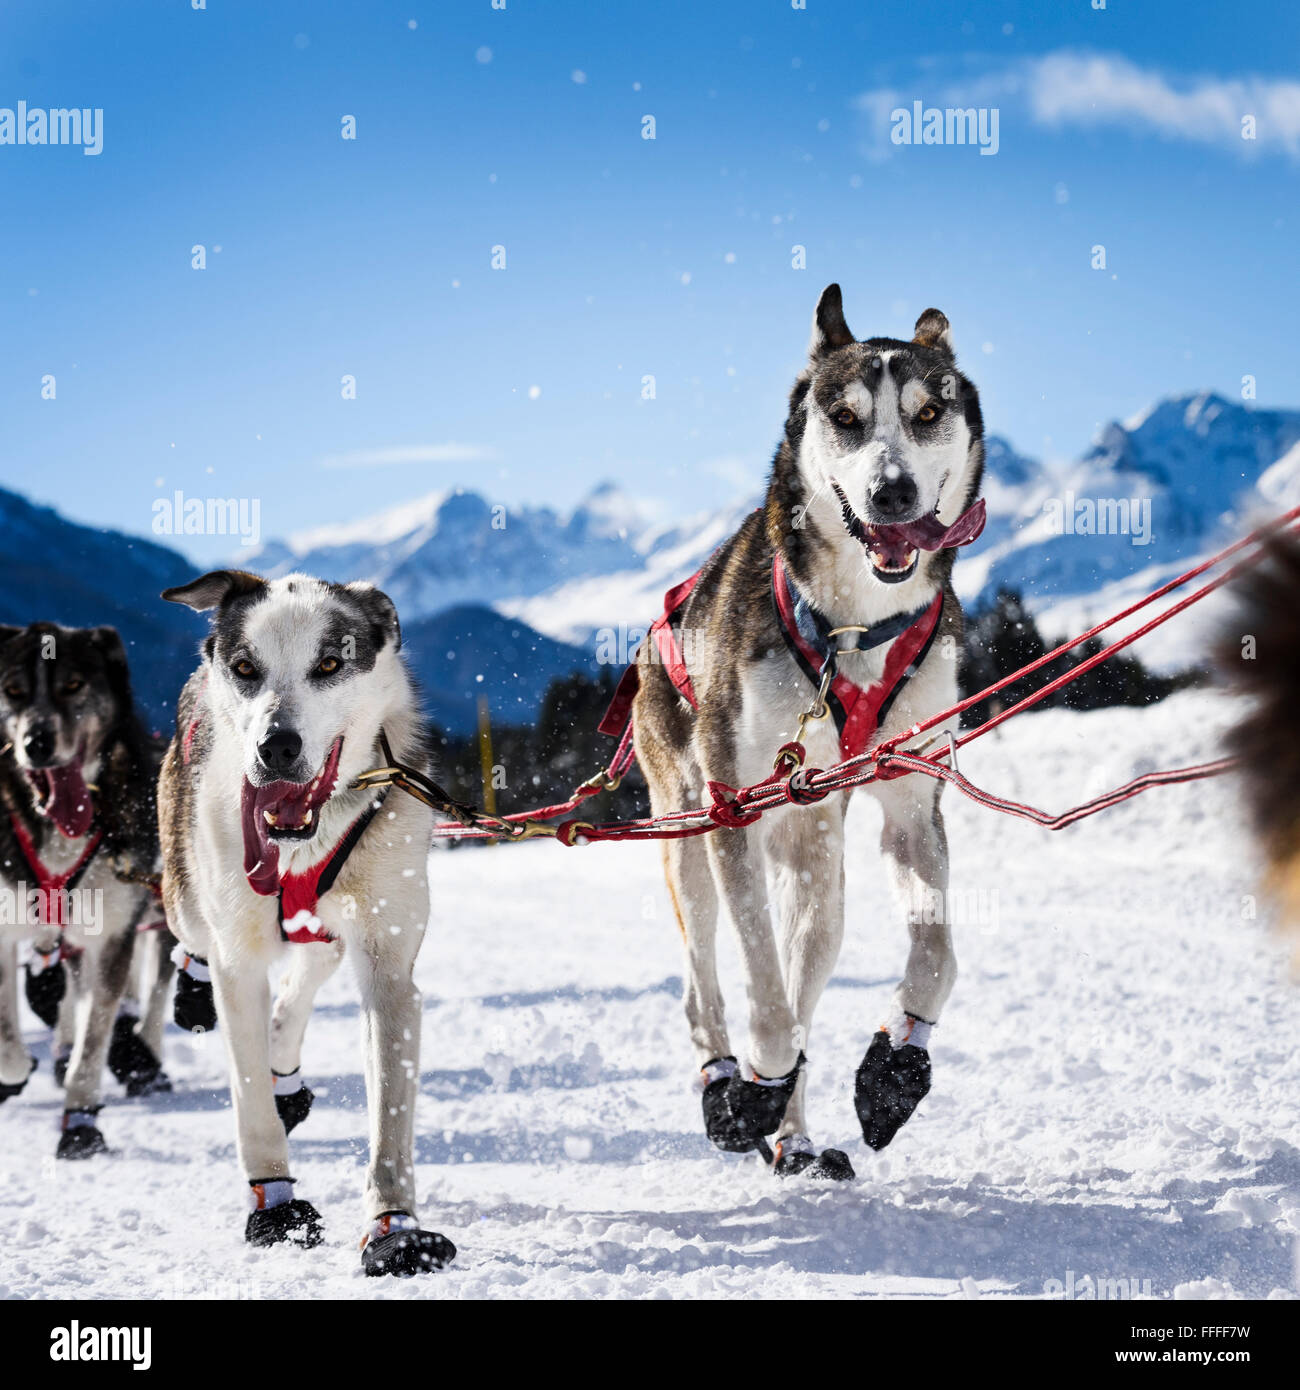 musher dogteam driver and Siberian husky at snow winter competition race in forest - Stock Image